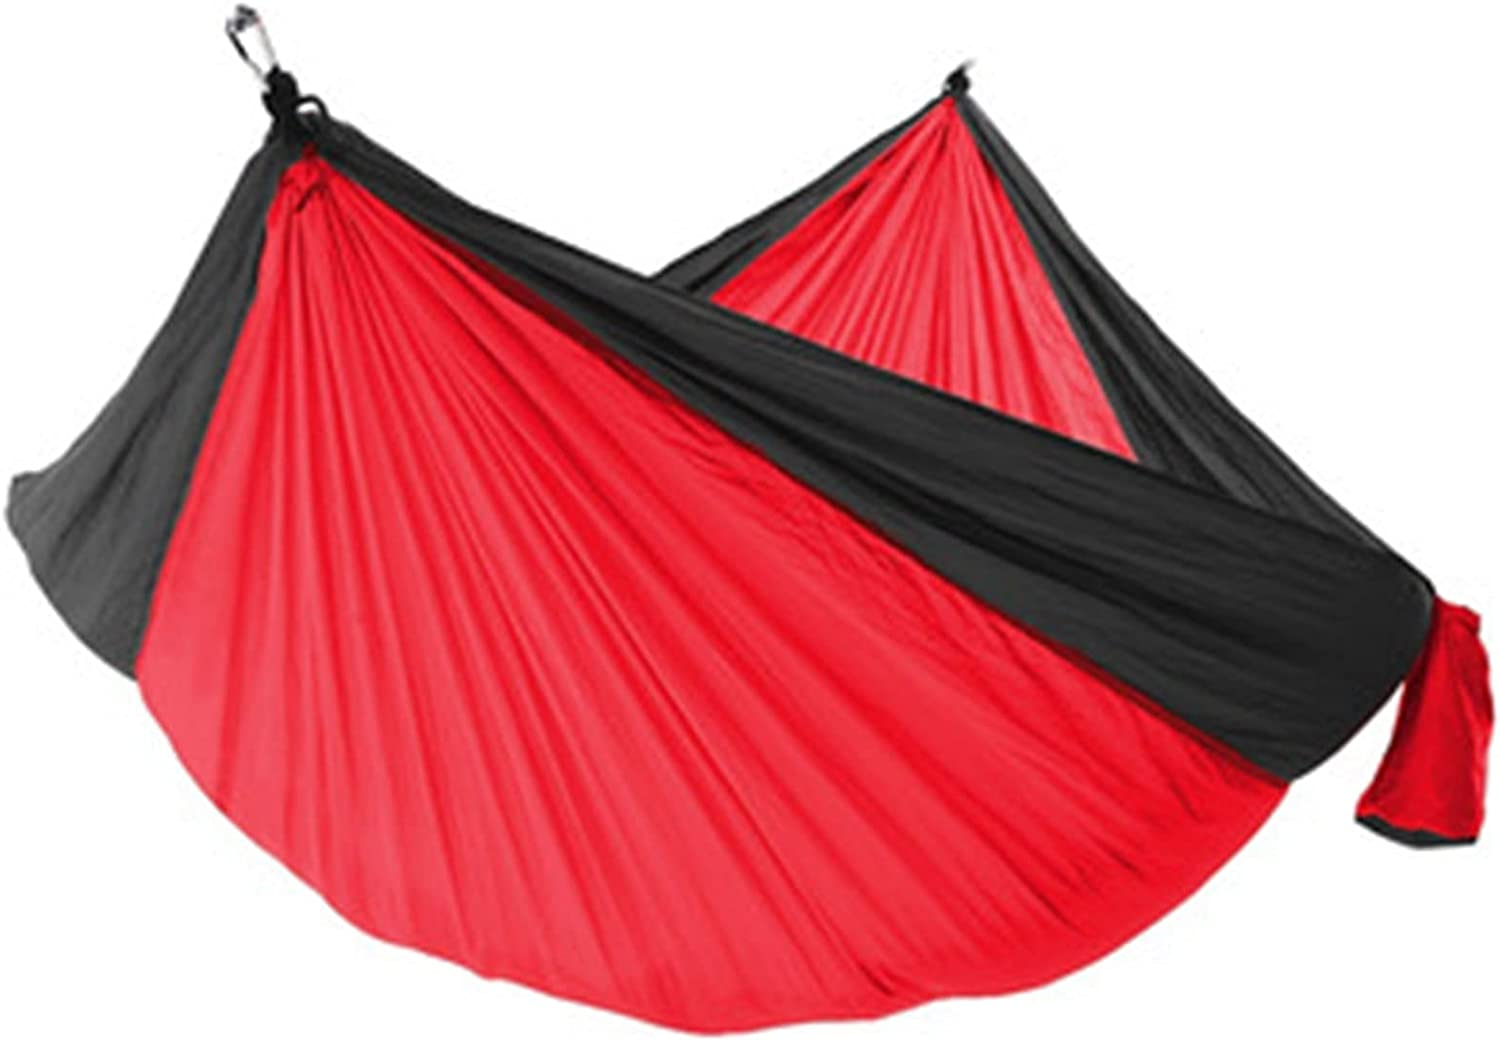 ZWDP Single Camping Hammock with and Ultra-Cheap Deals Adjustable Tree Strap Frisb Max 64% OFF